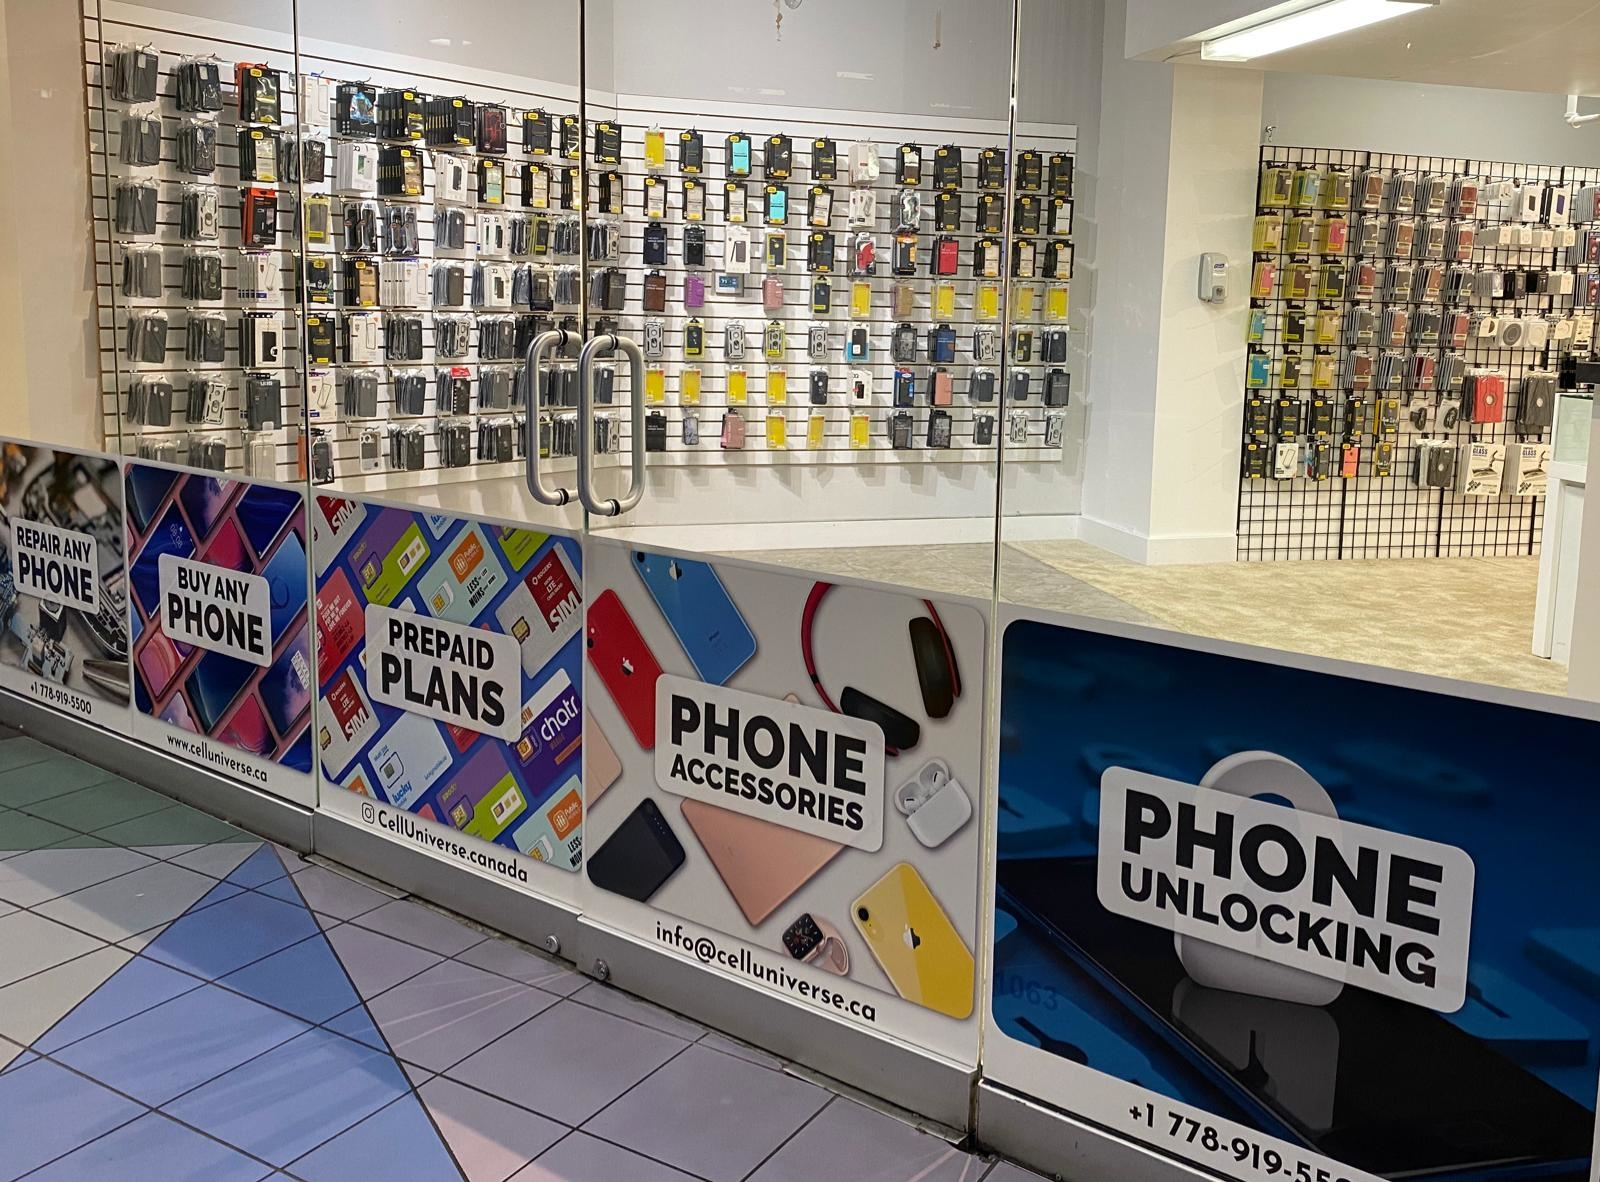 Cell Universe - Phone Repair | electronics store | 88 W Pender St Unit #1063, Vancouver, BC V6B 6N9, Canada | 7789195500 OR +1 778-919-5500